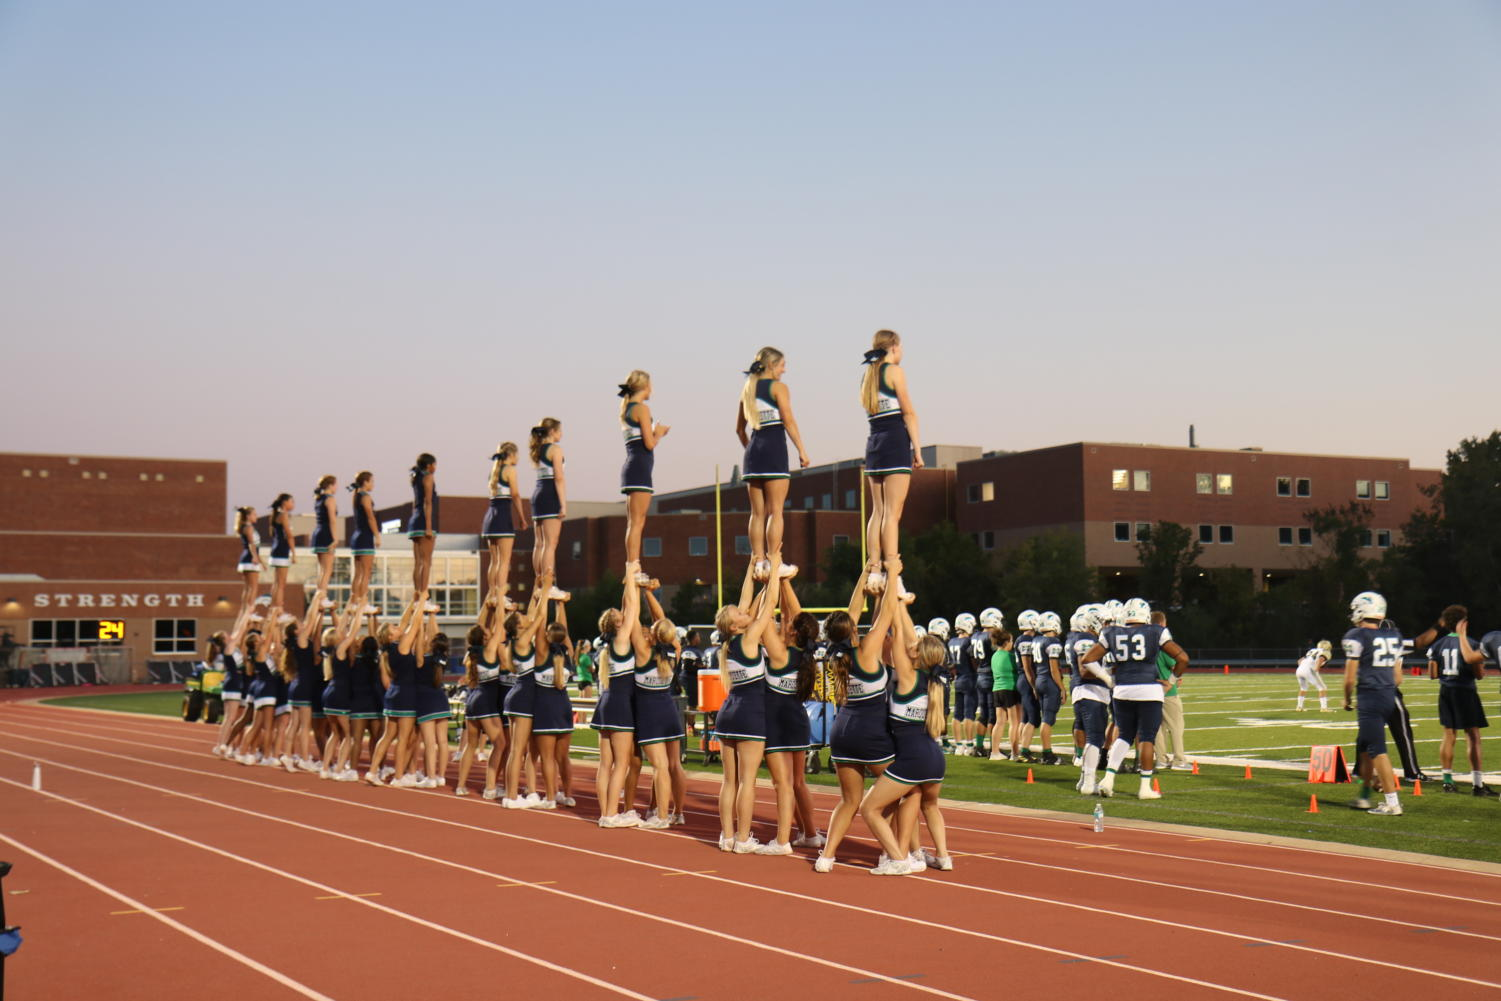 The+Mustangs+played+the+Lindbergh+Flyers+at+the+annual+Homecoming+game+Sept.+27+where+cheerleaders+performed+at+the+start+of+the+game.+Varsity+cheer+plans+to+compete+at+Regionals+Oct.+26.+